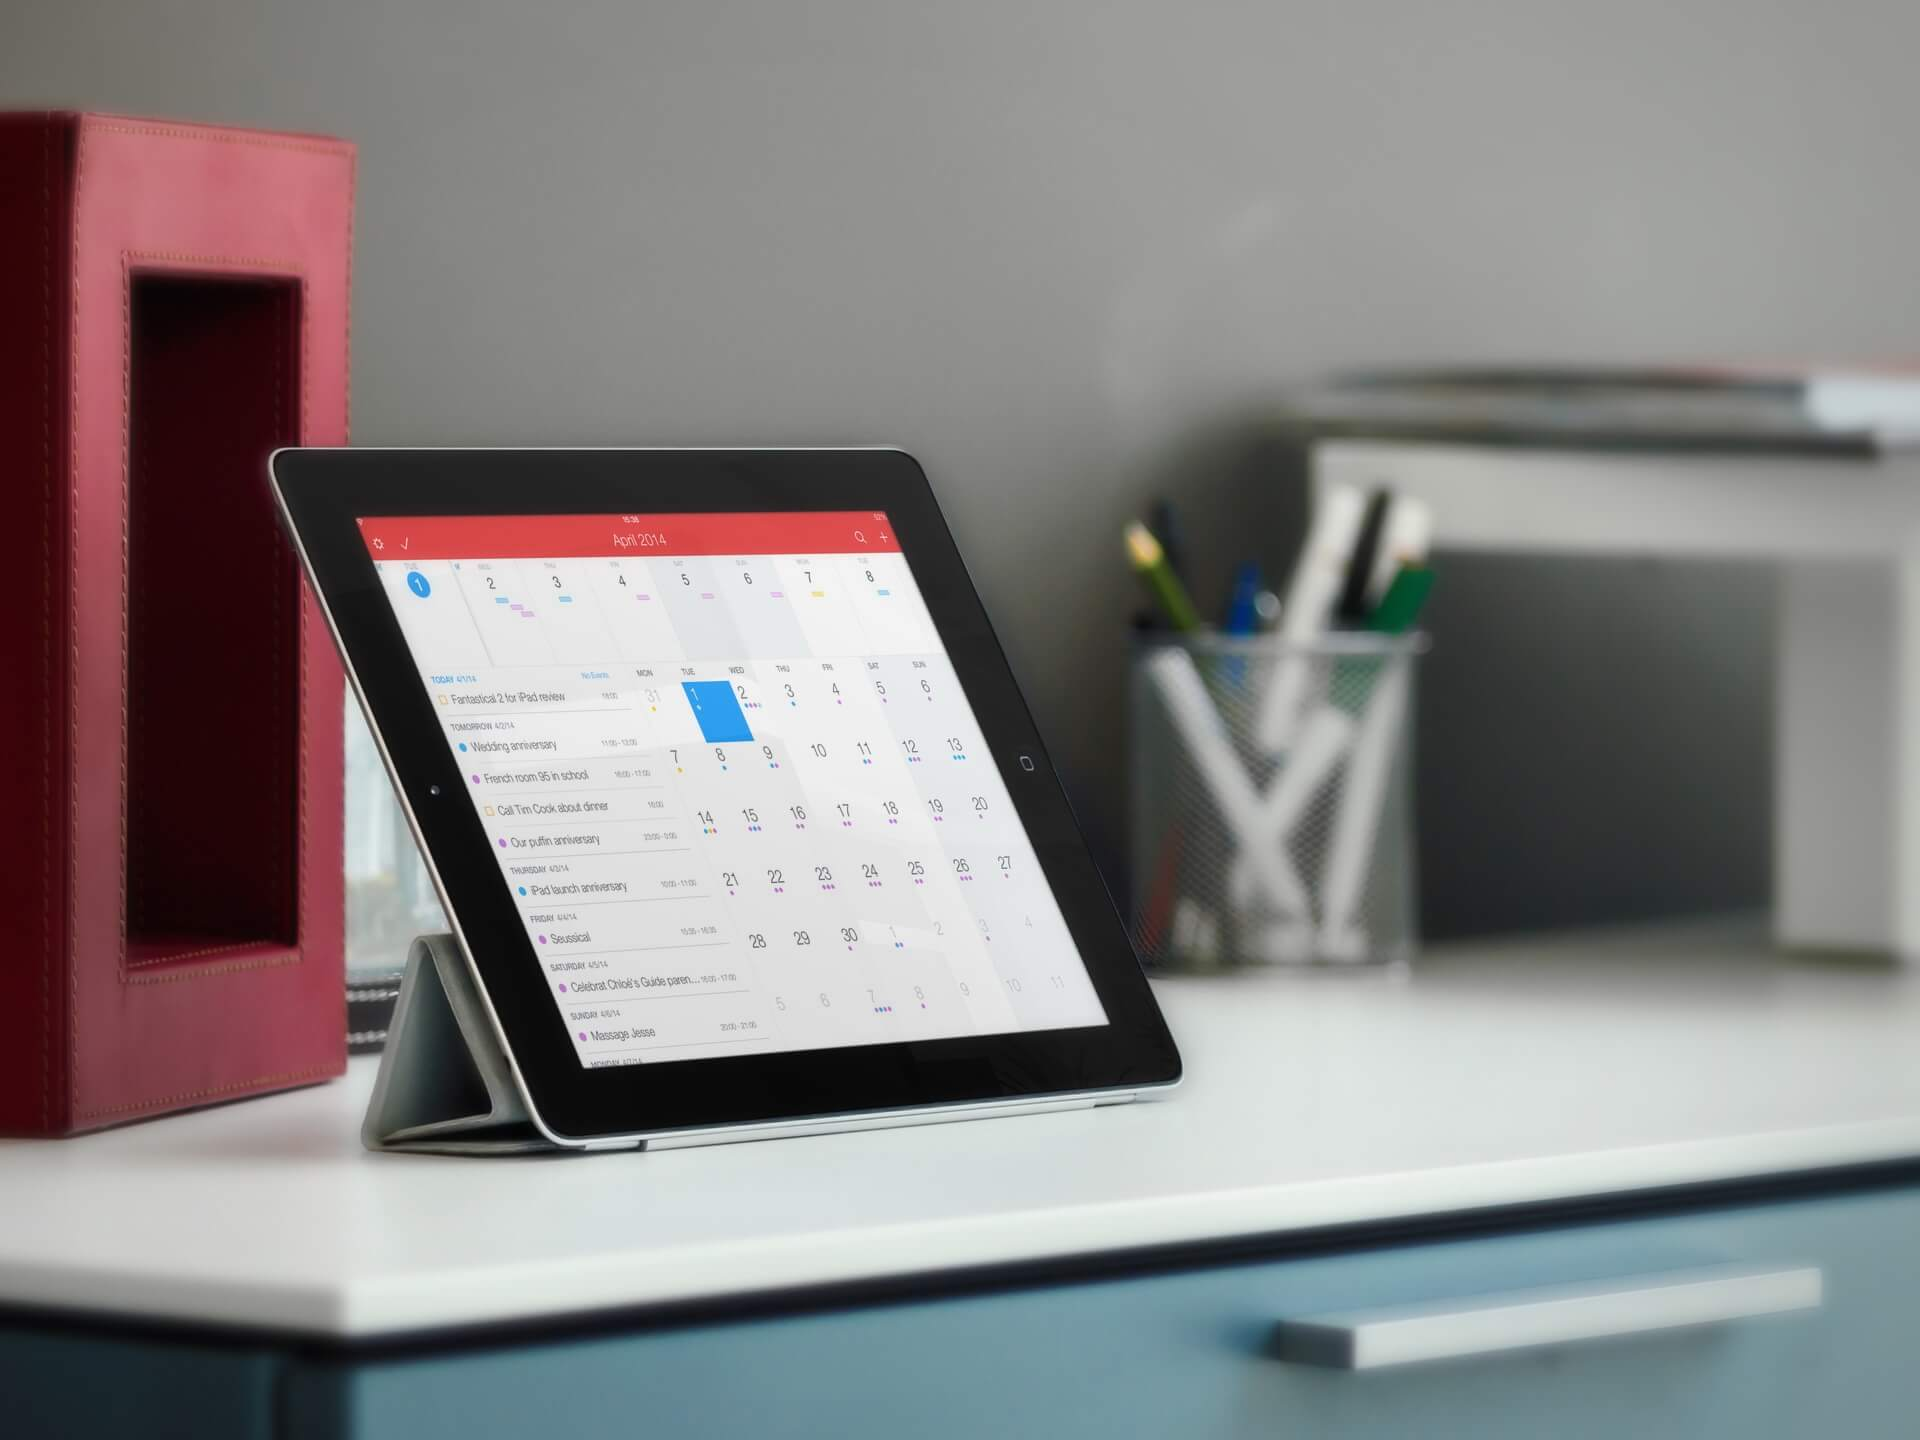 AniPad in a Business Environment